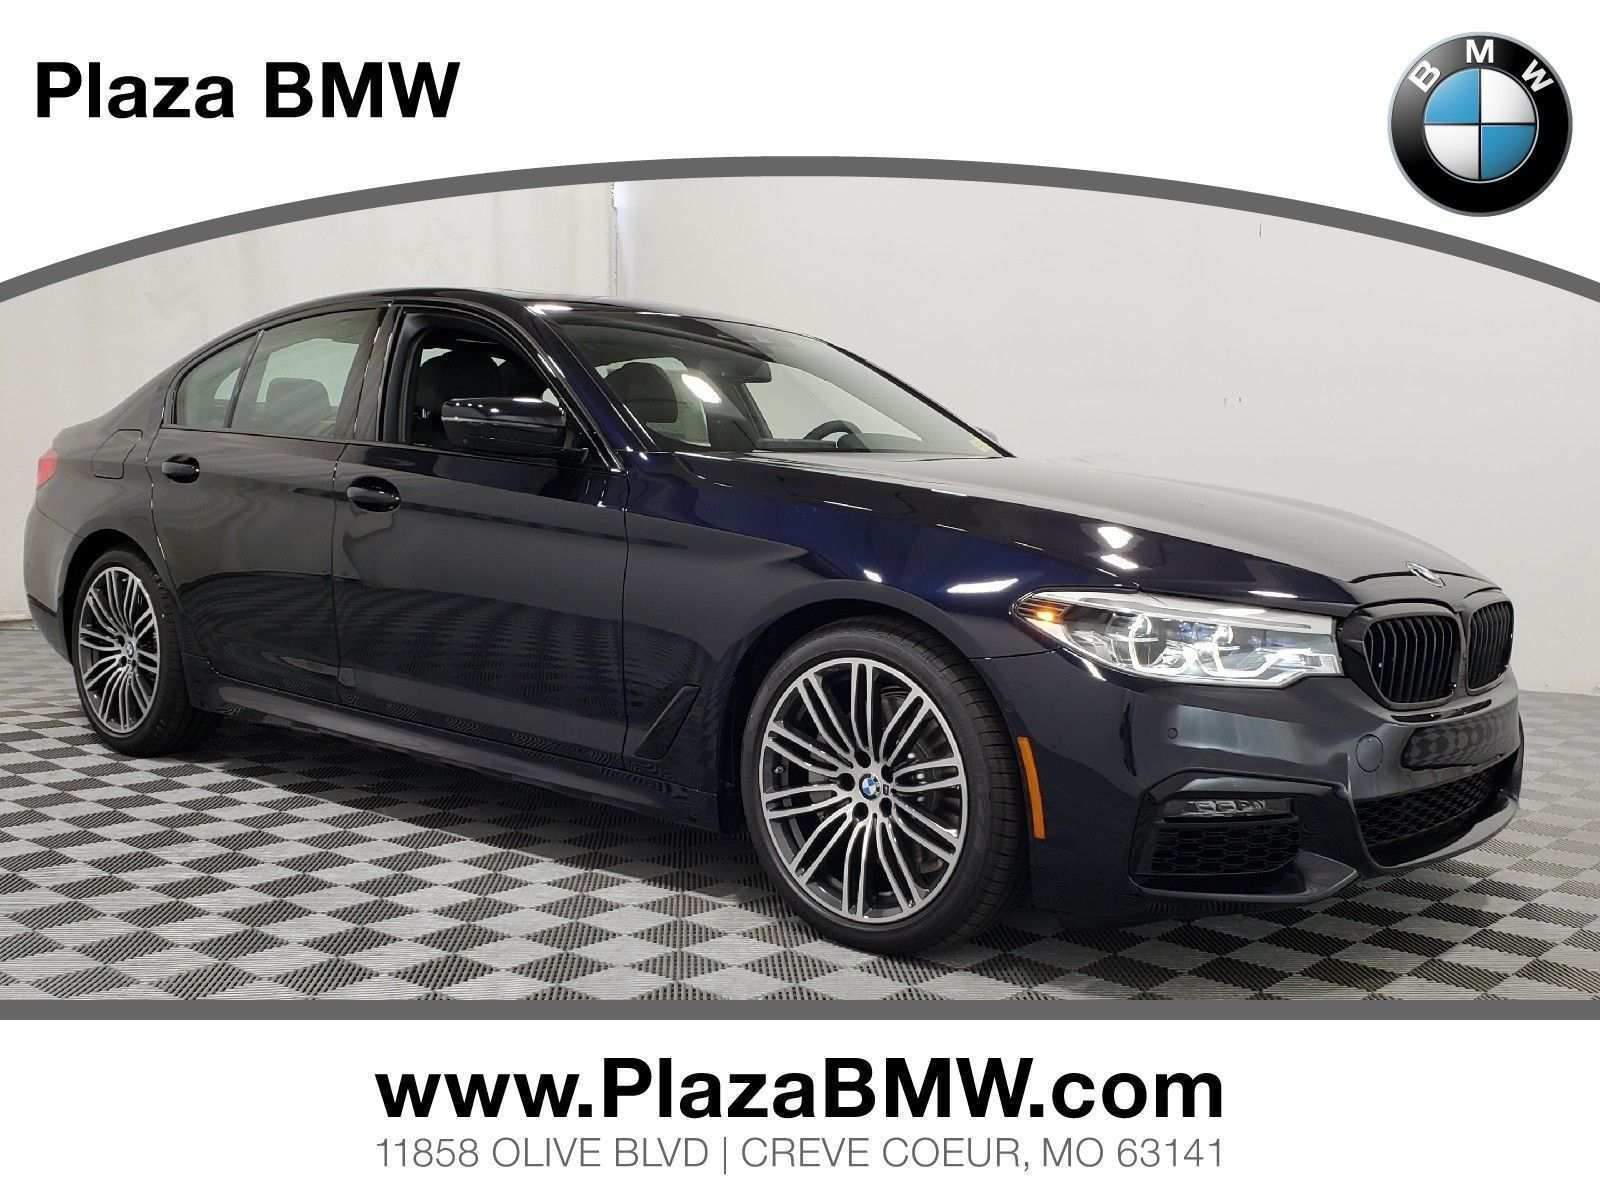 24 New 2019 Bmw 5500 Hd Prices for 2019 Bmw 5500 Hd